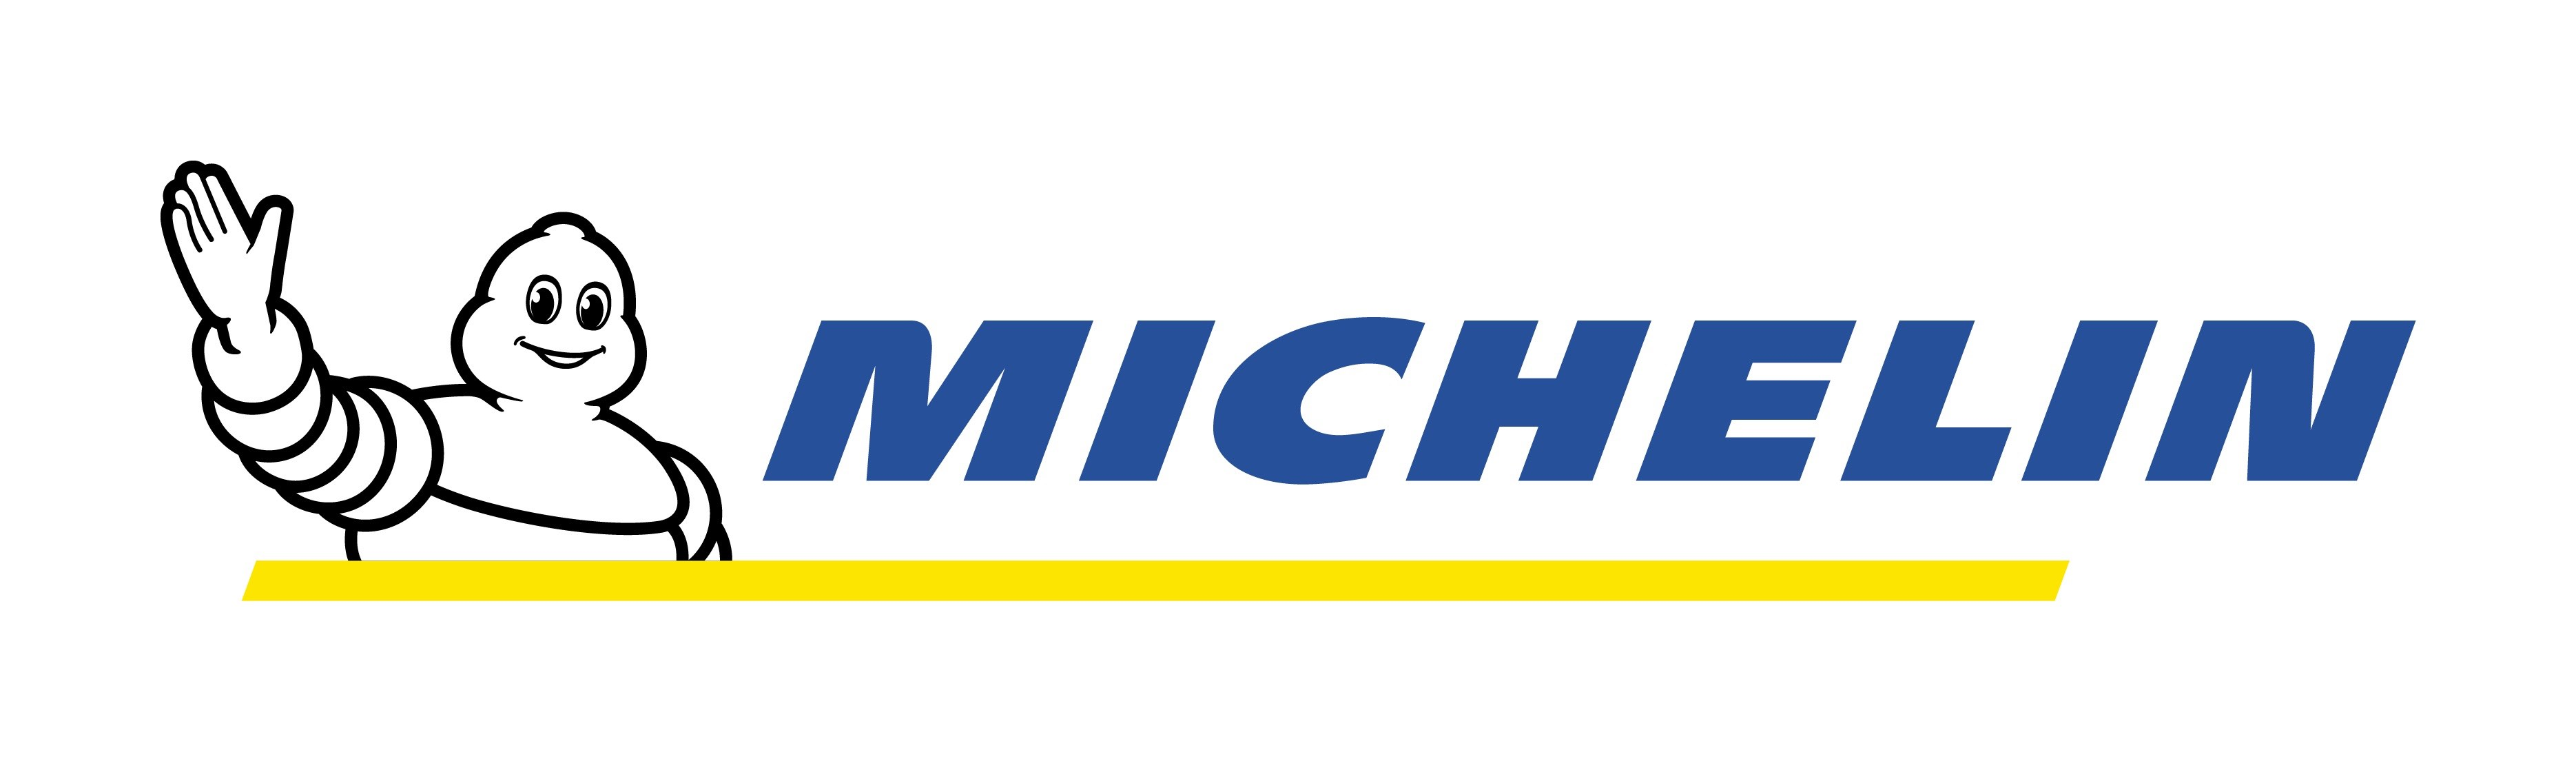 Michelin_C_H_WhiteBG_RGB_0703-01[1]